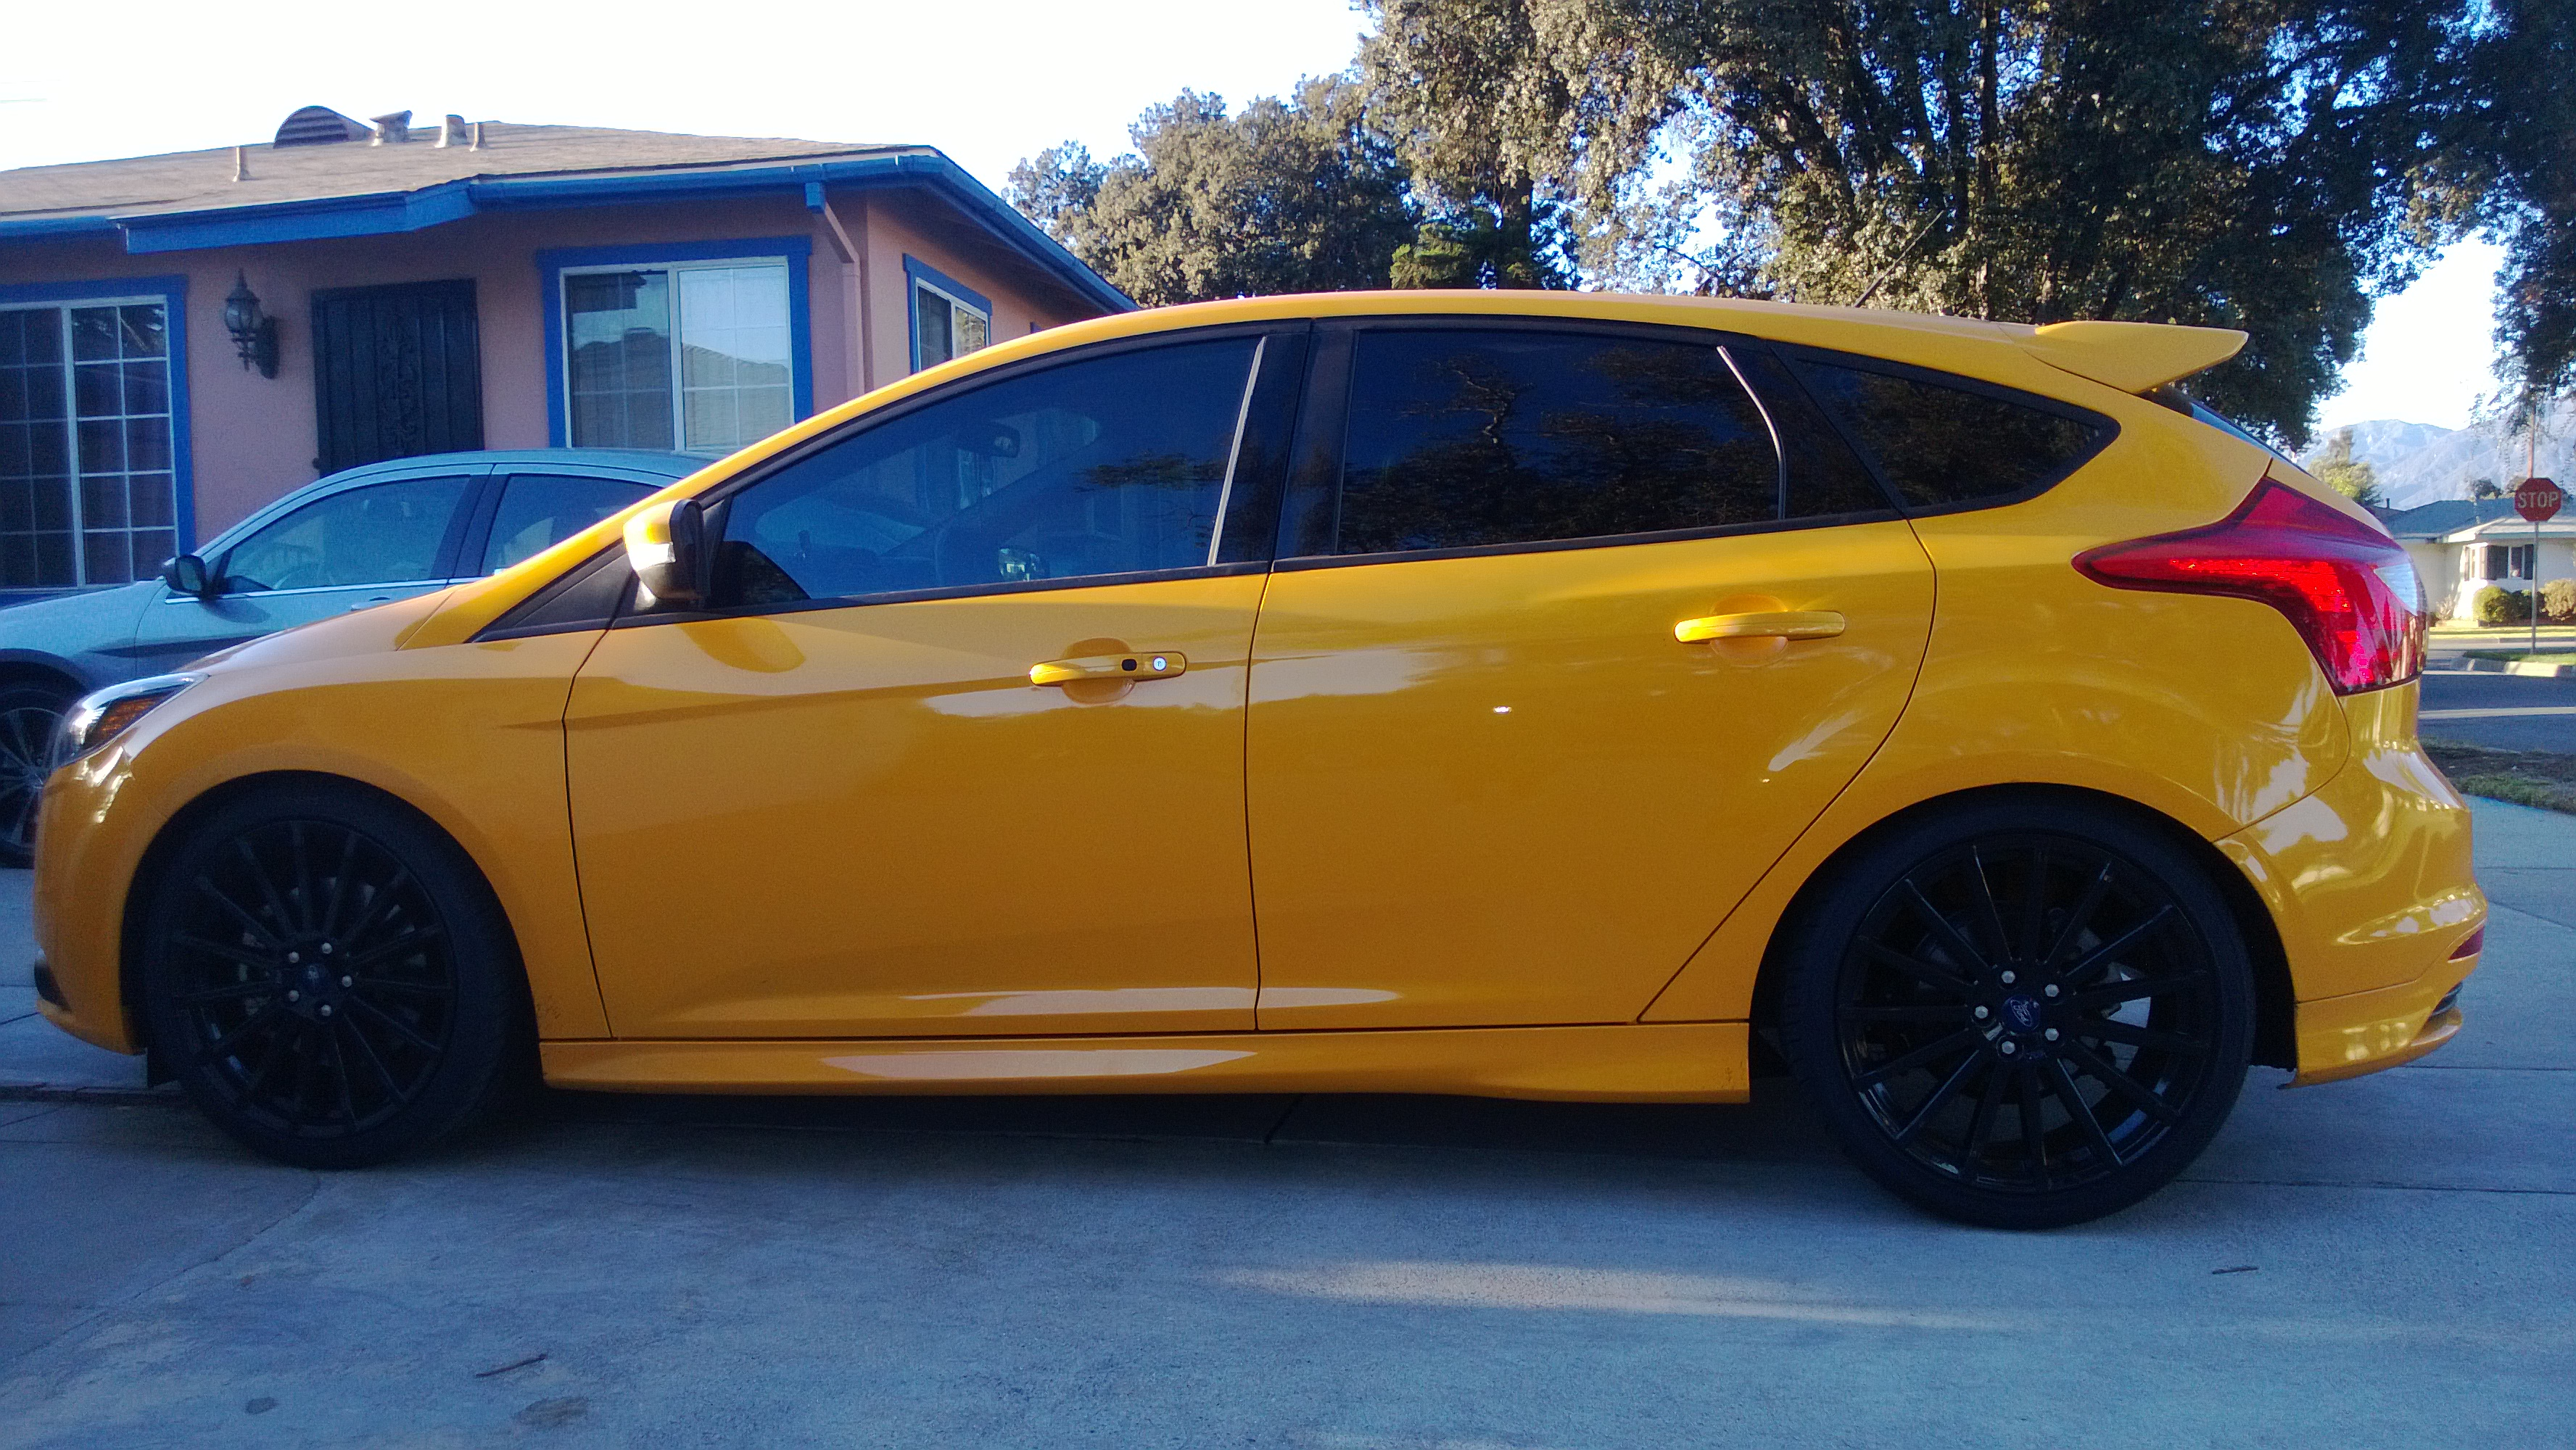 ford racing focus rs wheels name wp_20130924_004 jpg views 28970 size 2 72